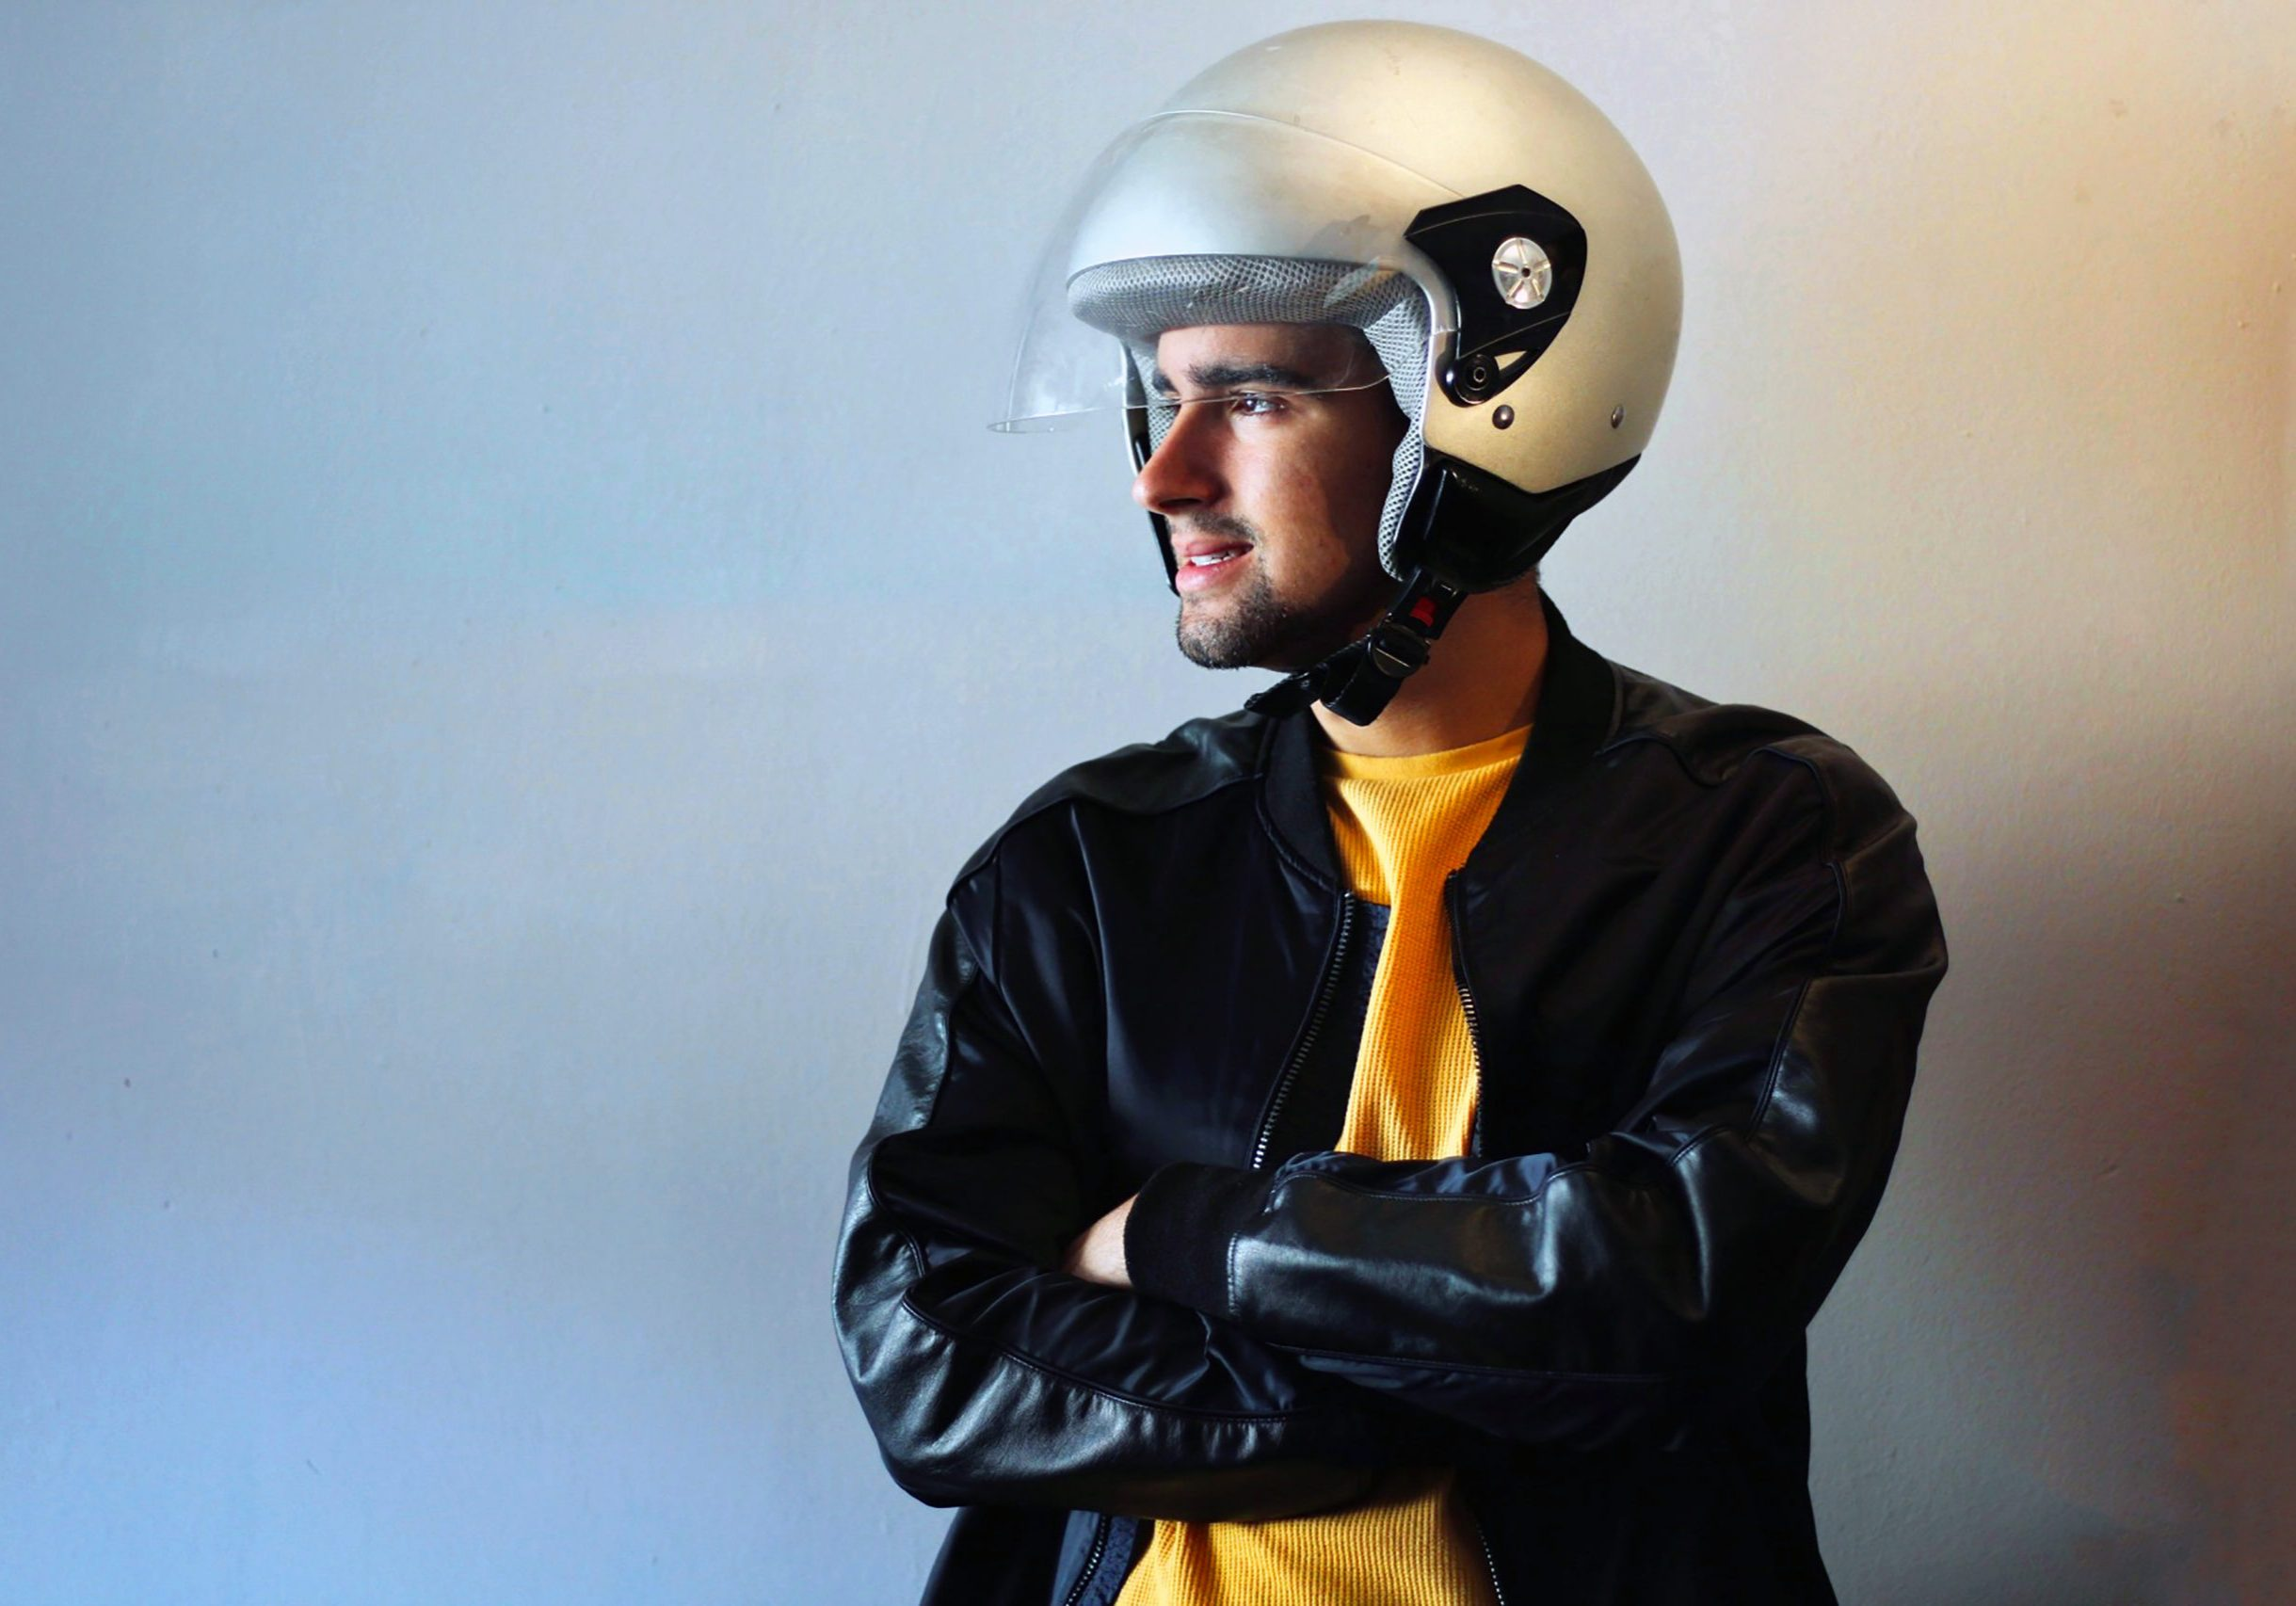 Young biker with a gray motorcycle helmet on. Road safety campaign. Copy Space.